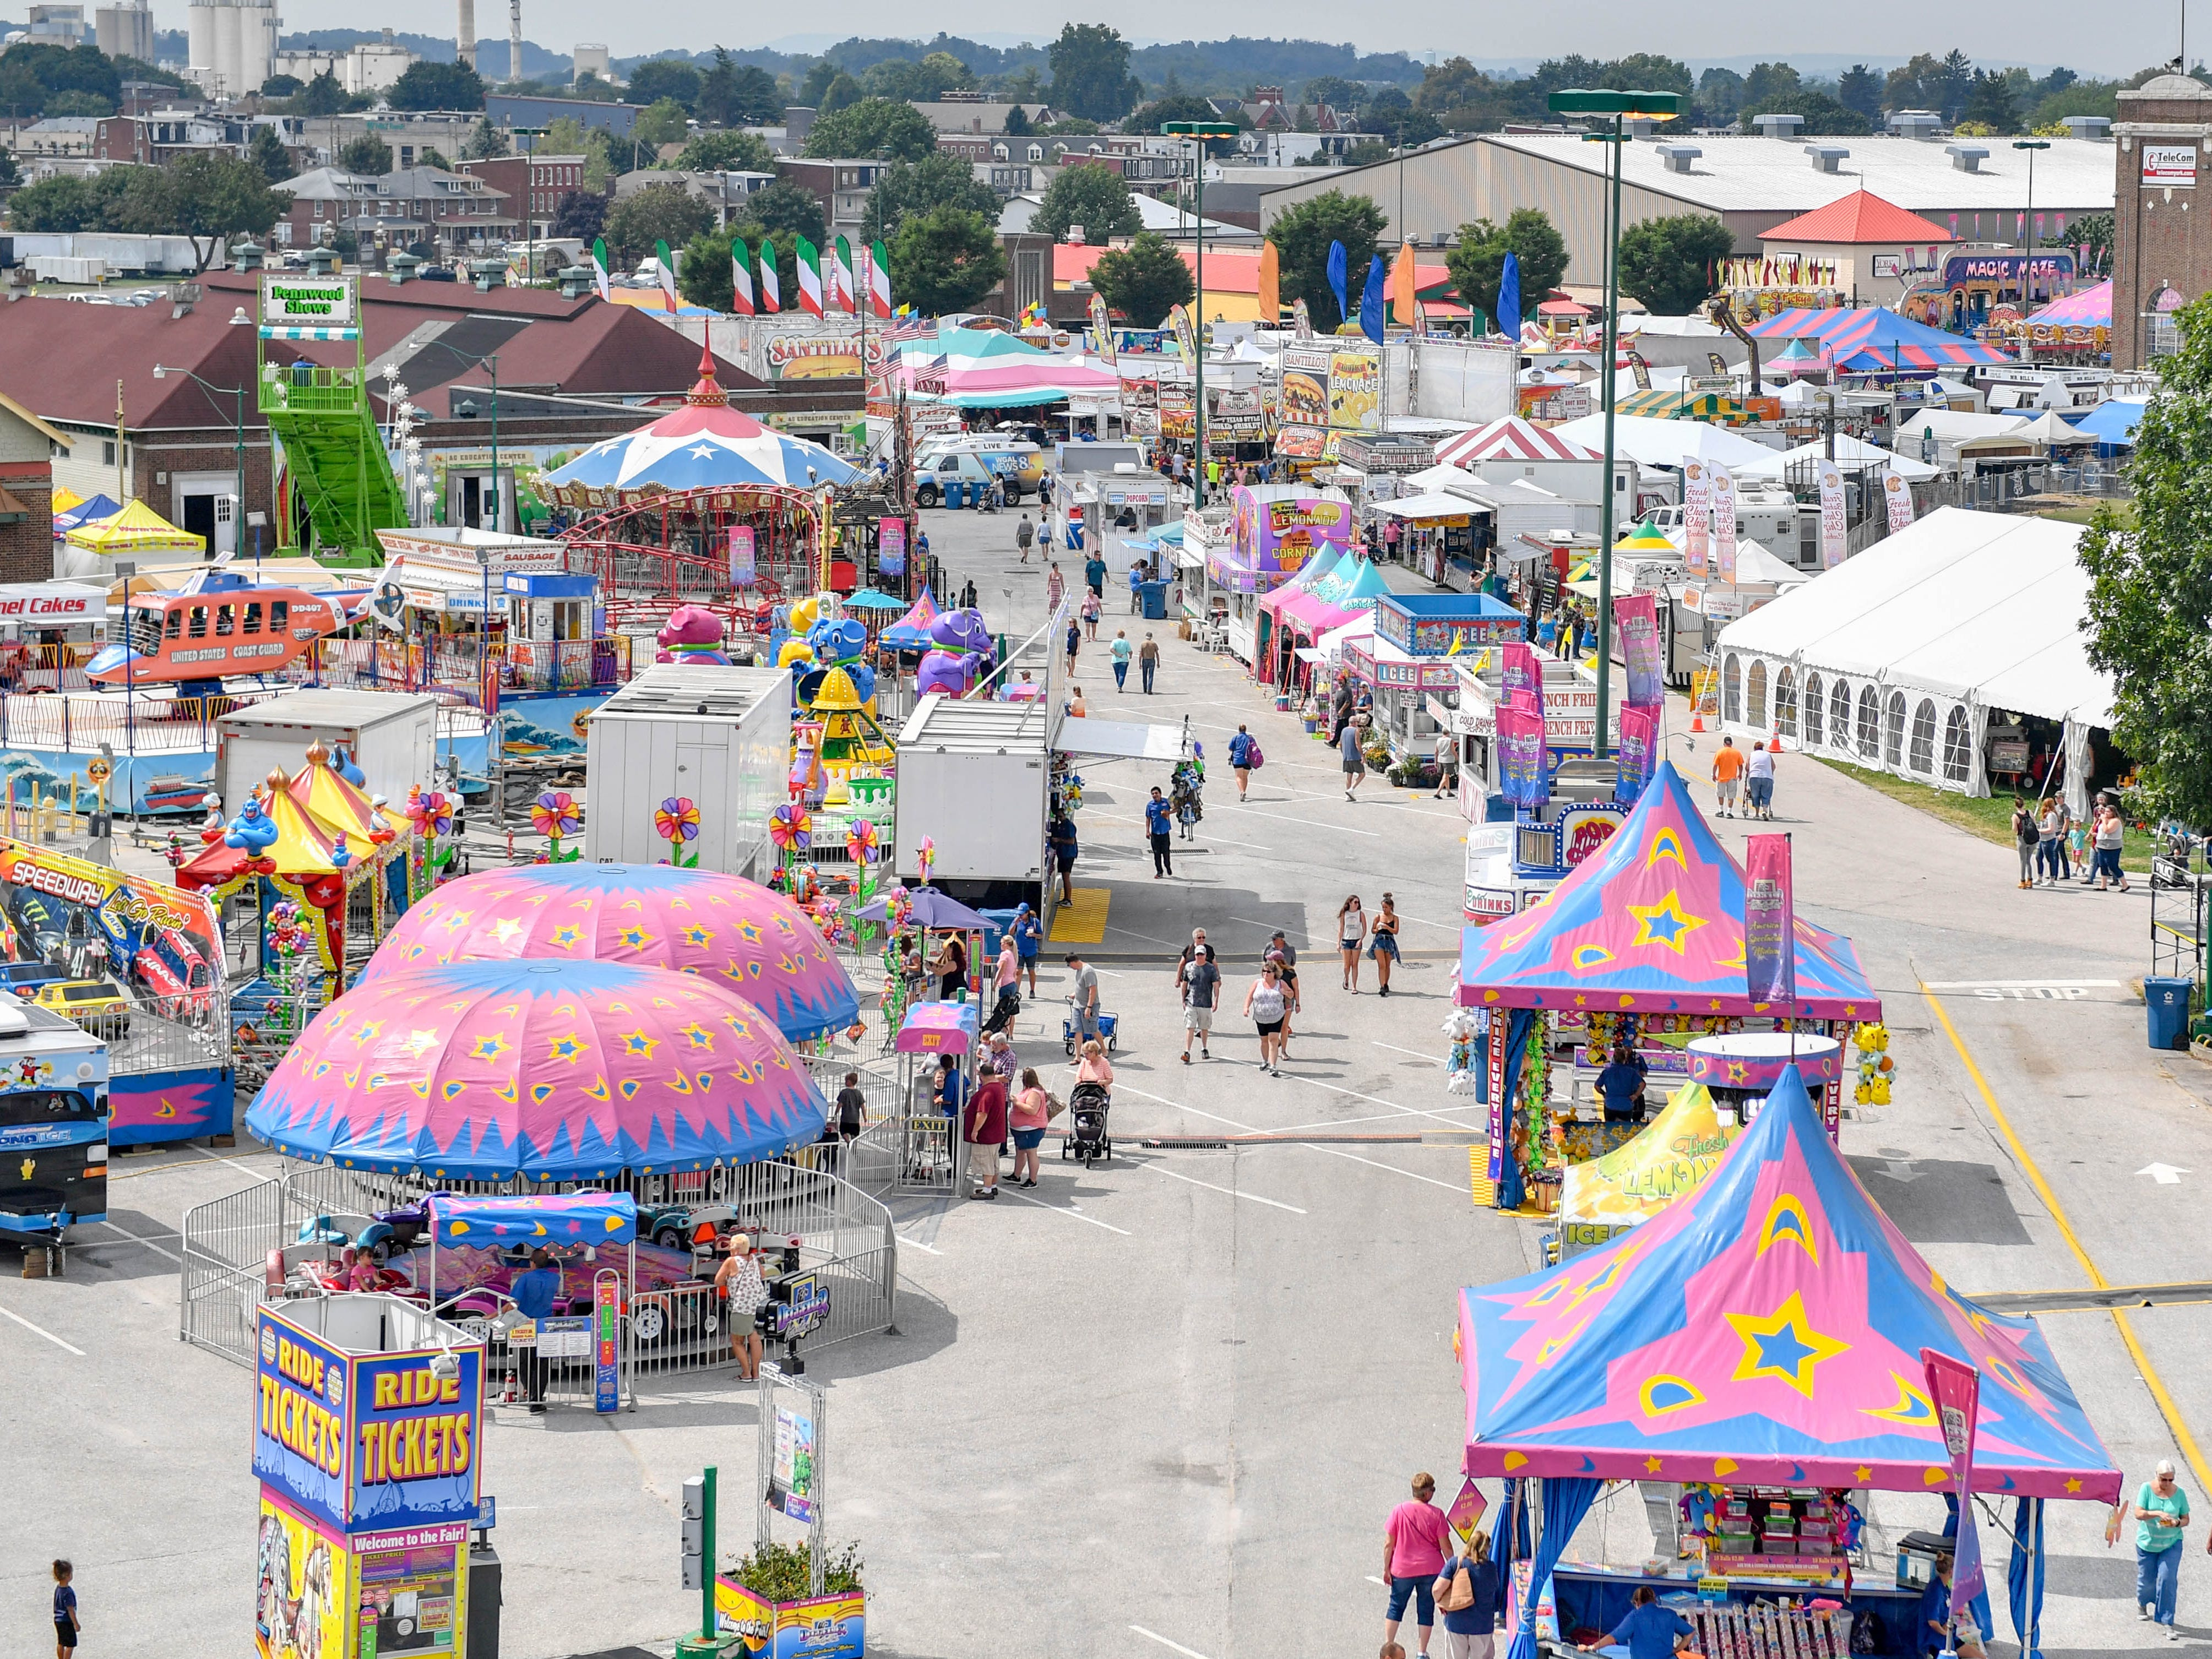 The 2018 York Fair kicks off, bringing people from across Pennsylvania to York County, Friday, September 7.